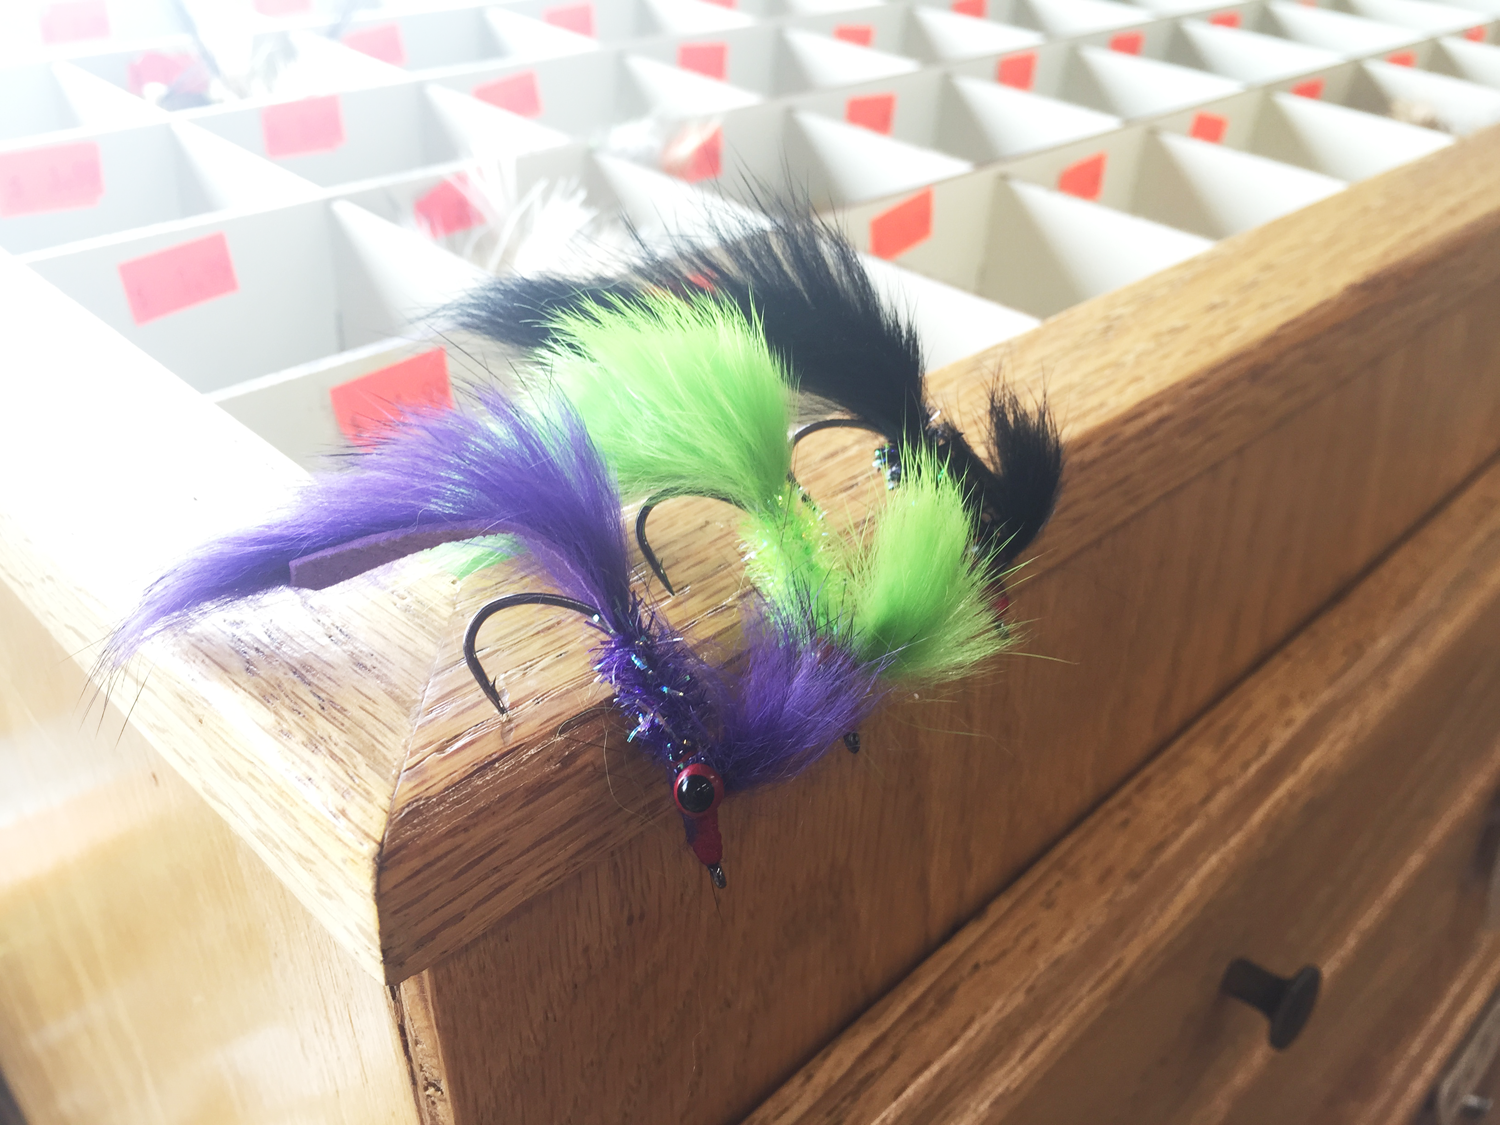 We've got Bay Bugs back in stock at the shop. A great all around bass fly for the waters of Lake Superior as well as the areas inland lakes and rivers.